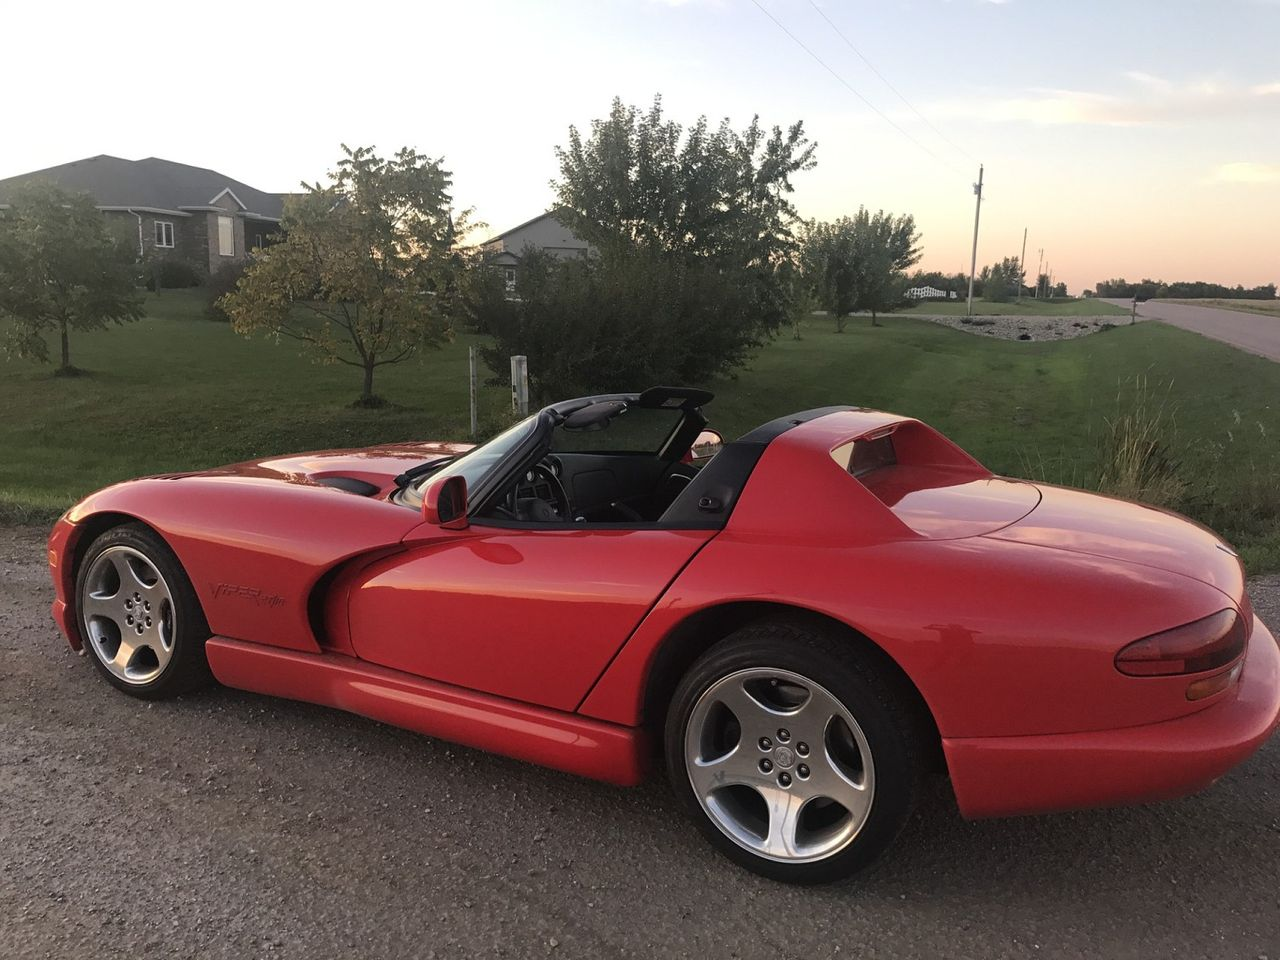 2001 Dodge Viper RT/10 | Beresford, SD, Viper Red Clearcoat/Viper Red HT (Red & Orange), Rear Wheel